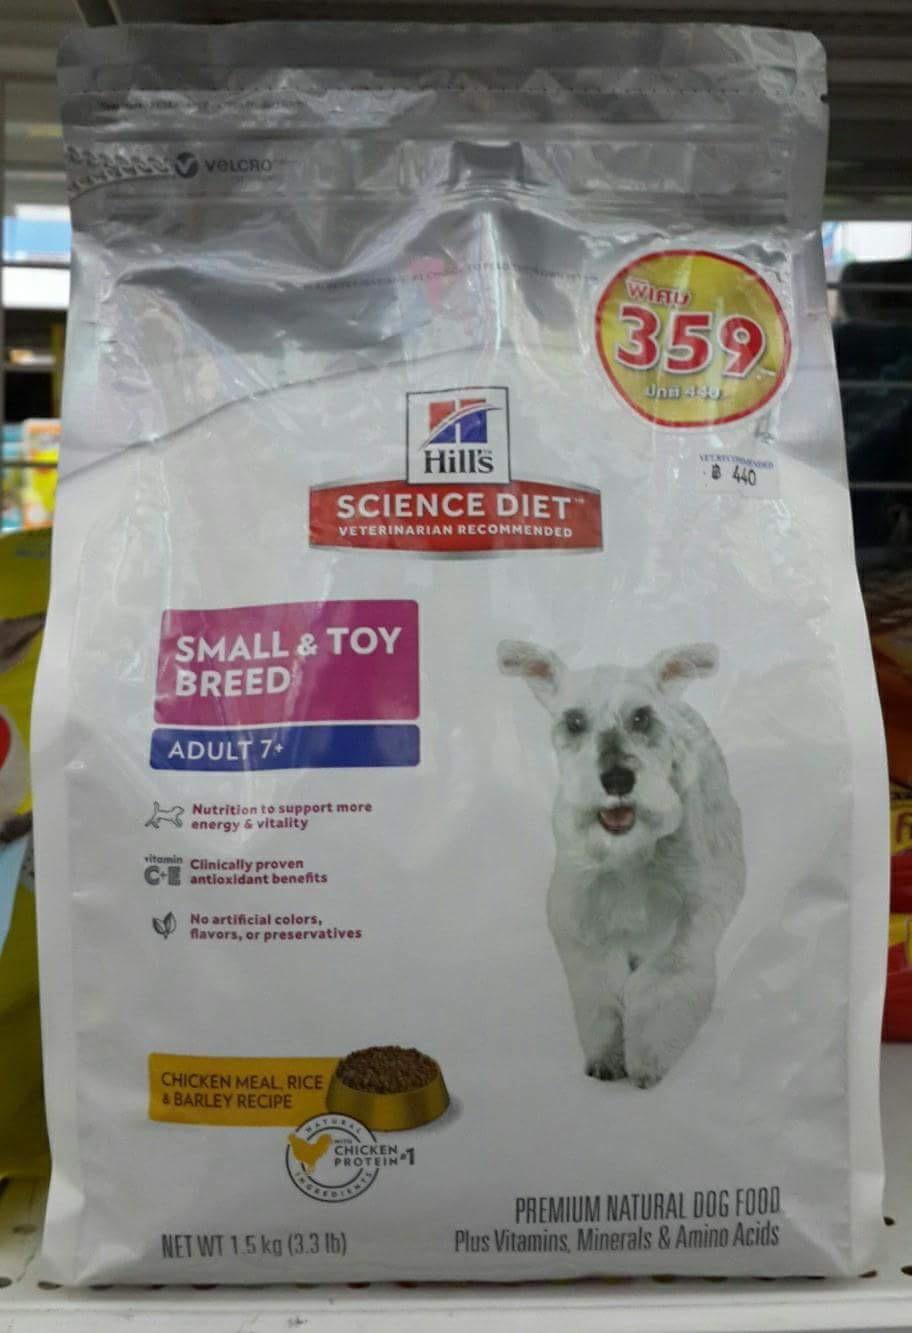 Hill's science diet small and toy breed adult 7ปีขึ้นไป 1.5kg 409รวมส่ง